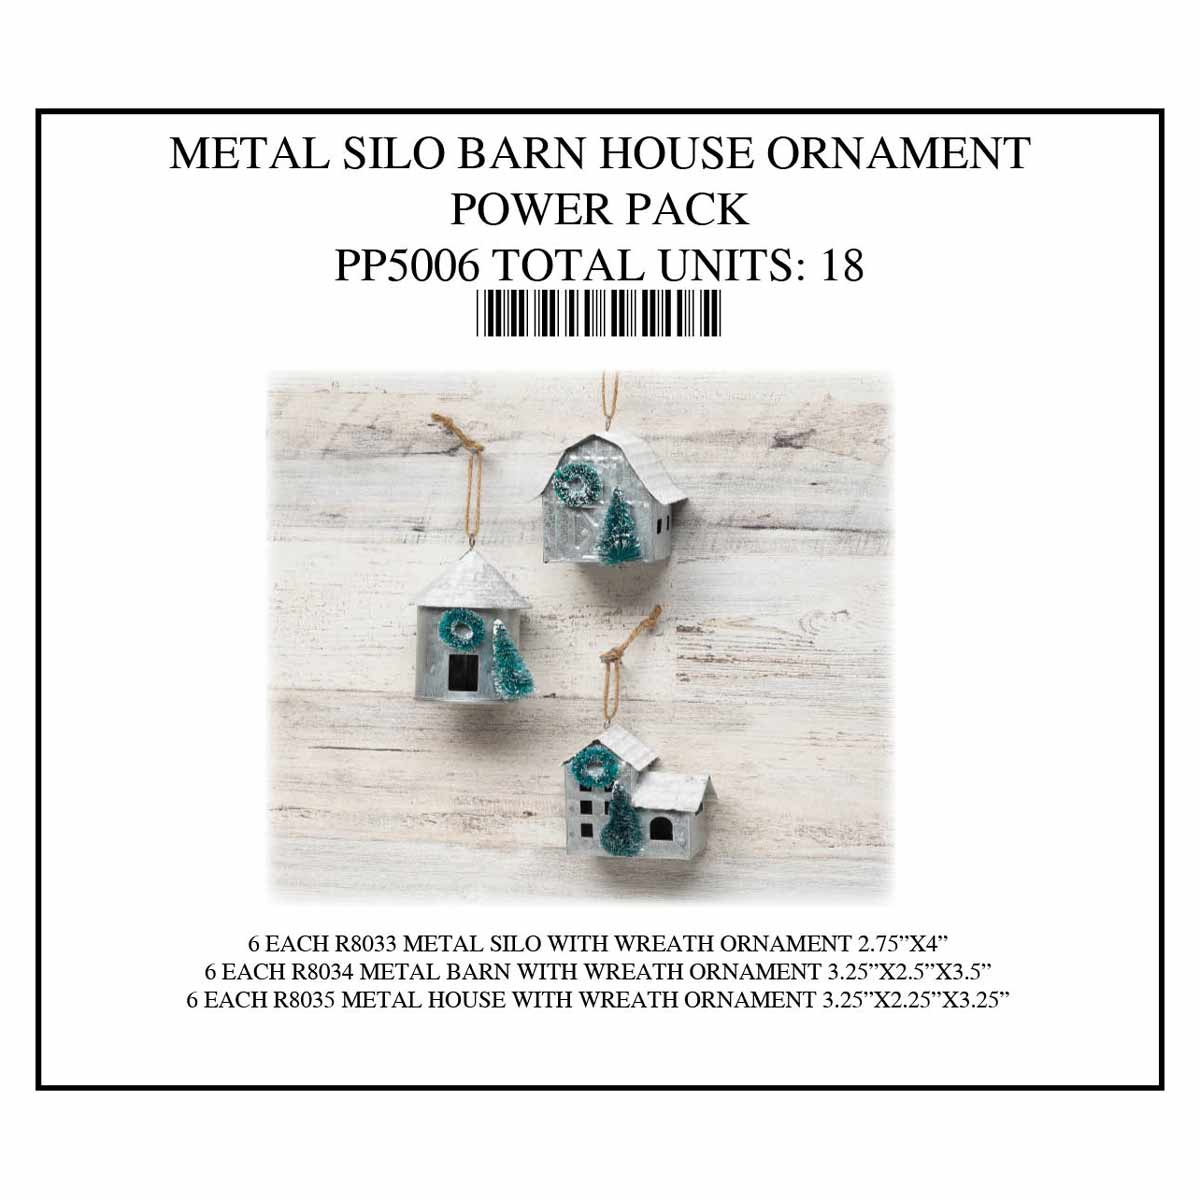 SILO/BARN ORNAMENT POWER PACK 18 UNITS PP5006